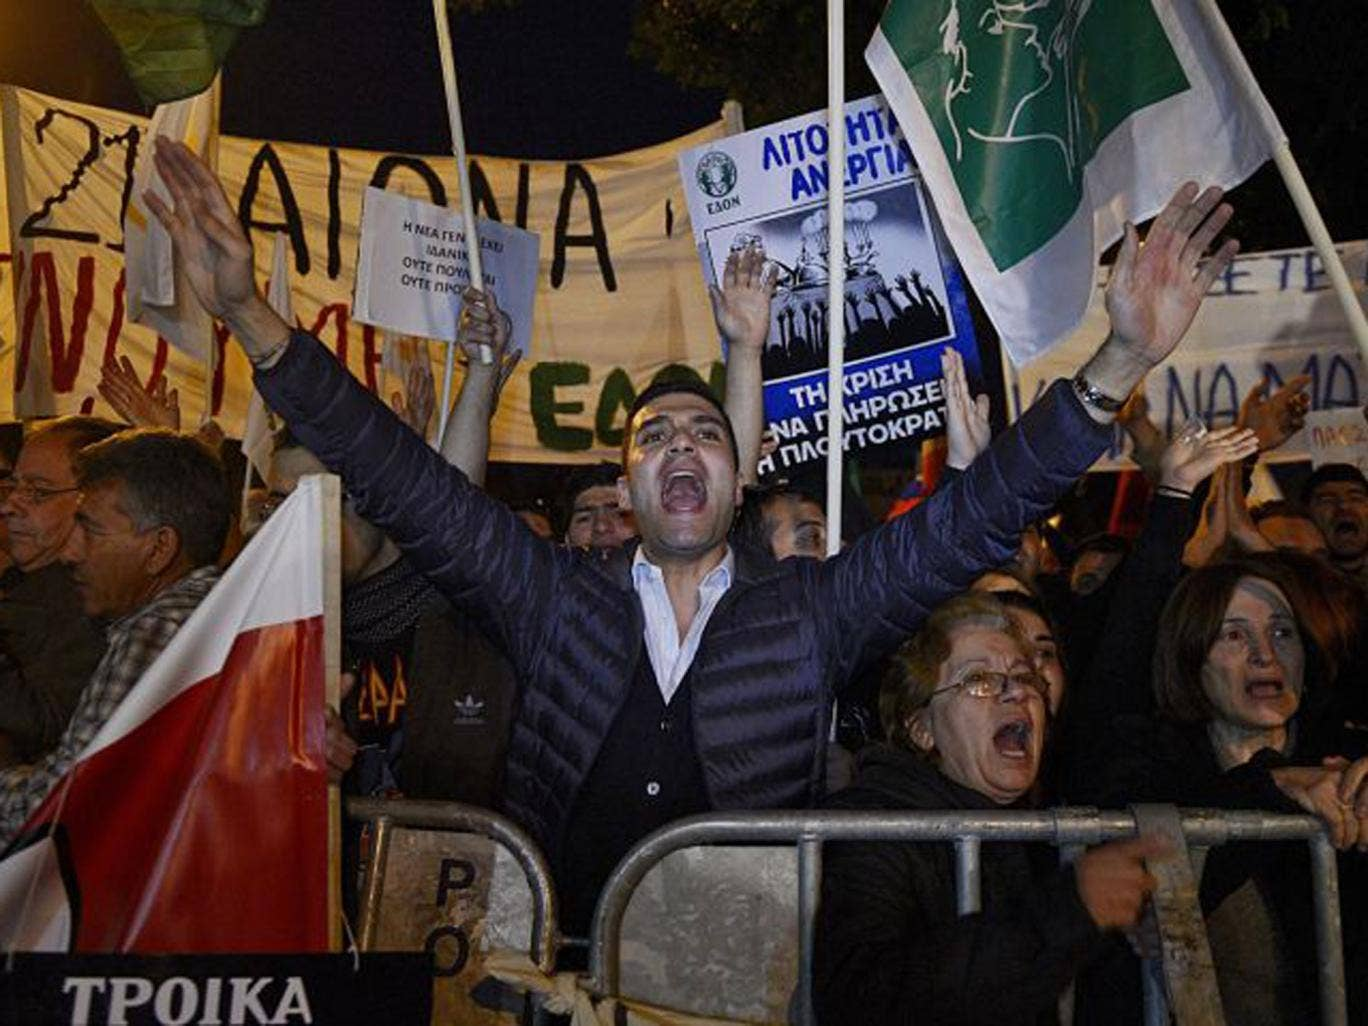 Protestors shout slogans during a rally against a tax levy on deposits